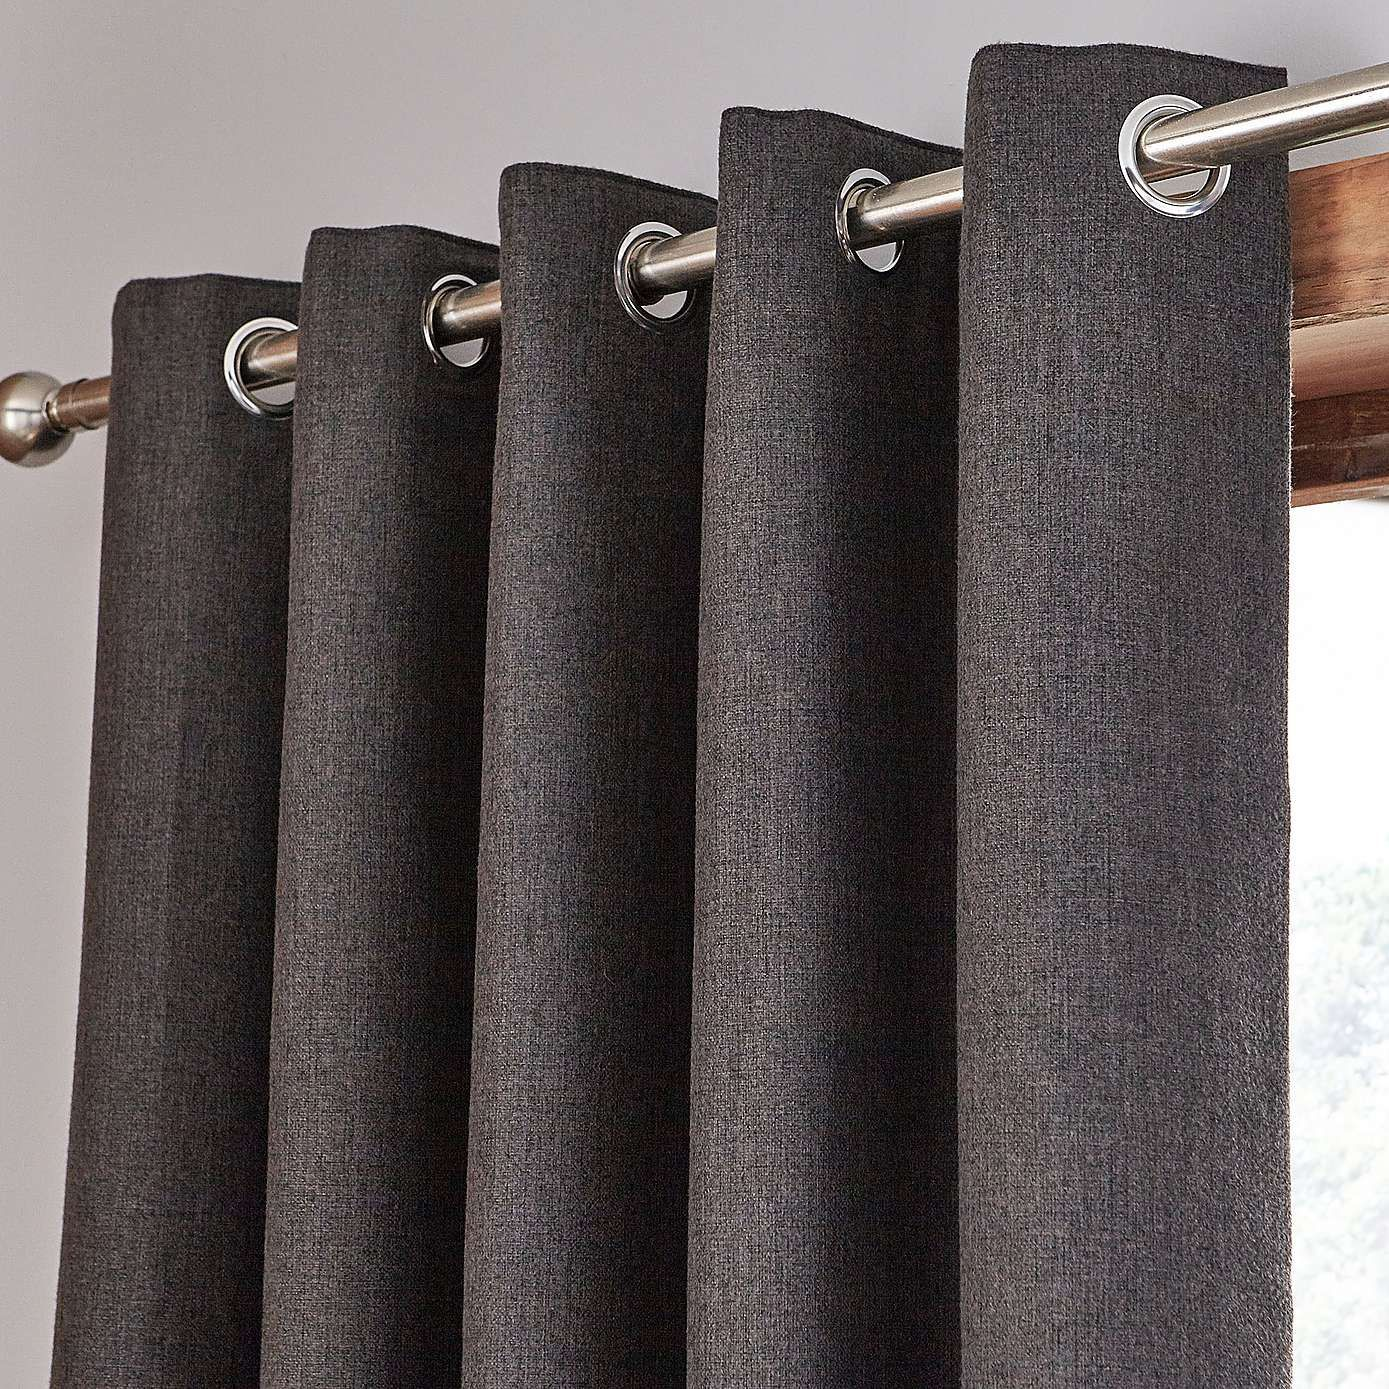 Harris Charcoal Thermal Eyelet Curtains Dunelm W 117cm 45 X D 182cm 72 50 00 For The Lounge Small Window Curtains Dunelm Curtains Charcoal